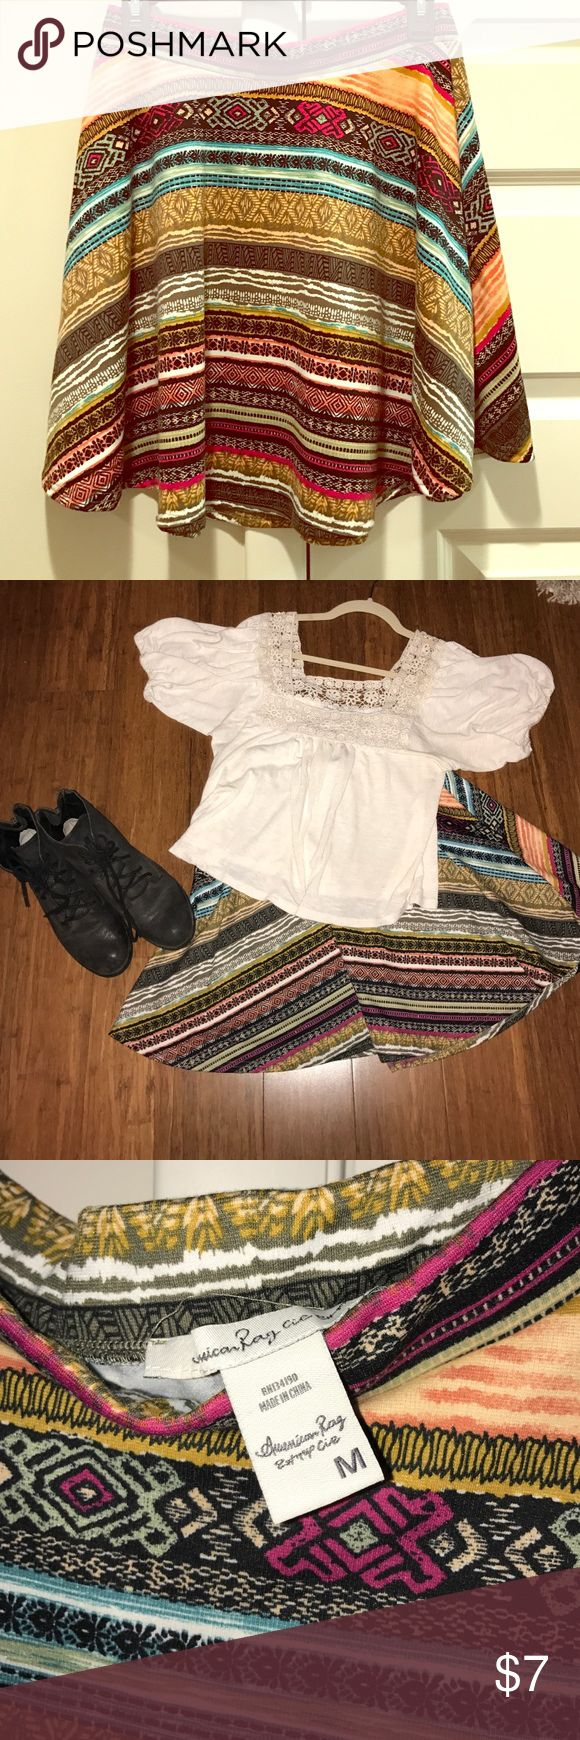 American Rag skirt American Rag skirt. Complete outfit in my closet! American Rag Skirts